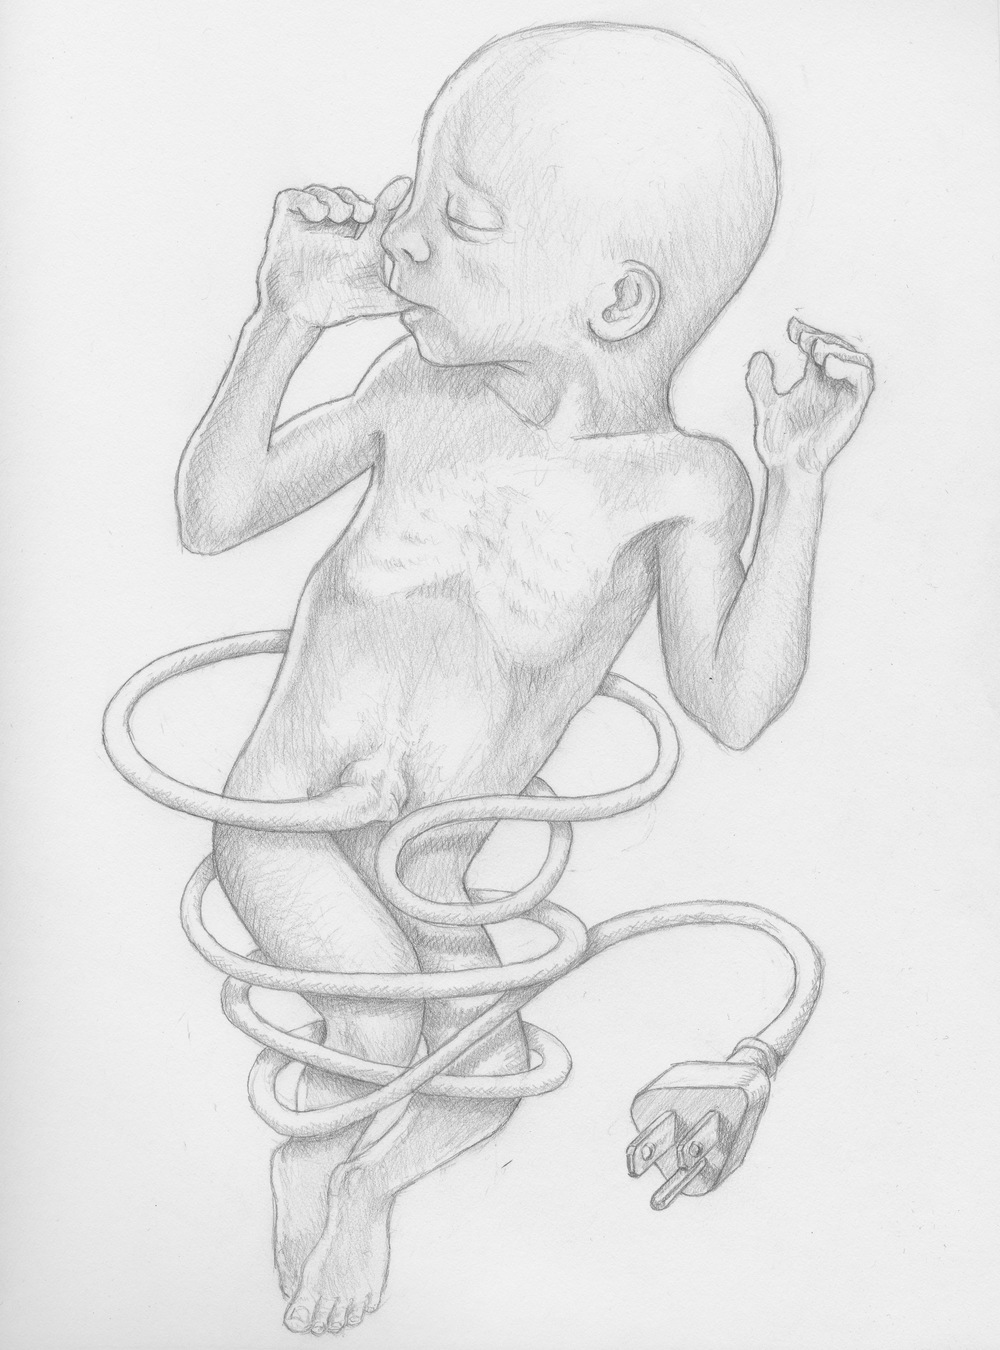 Umbilical    2011  Graphite on Paper  9x12